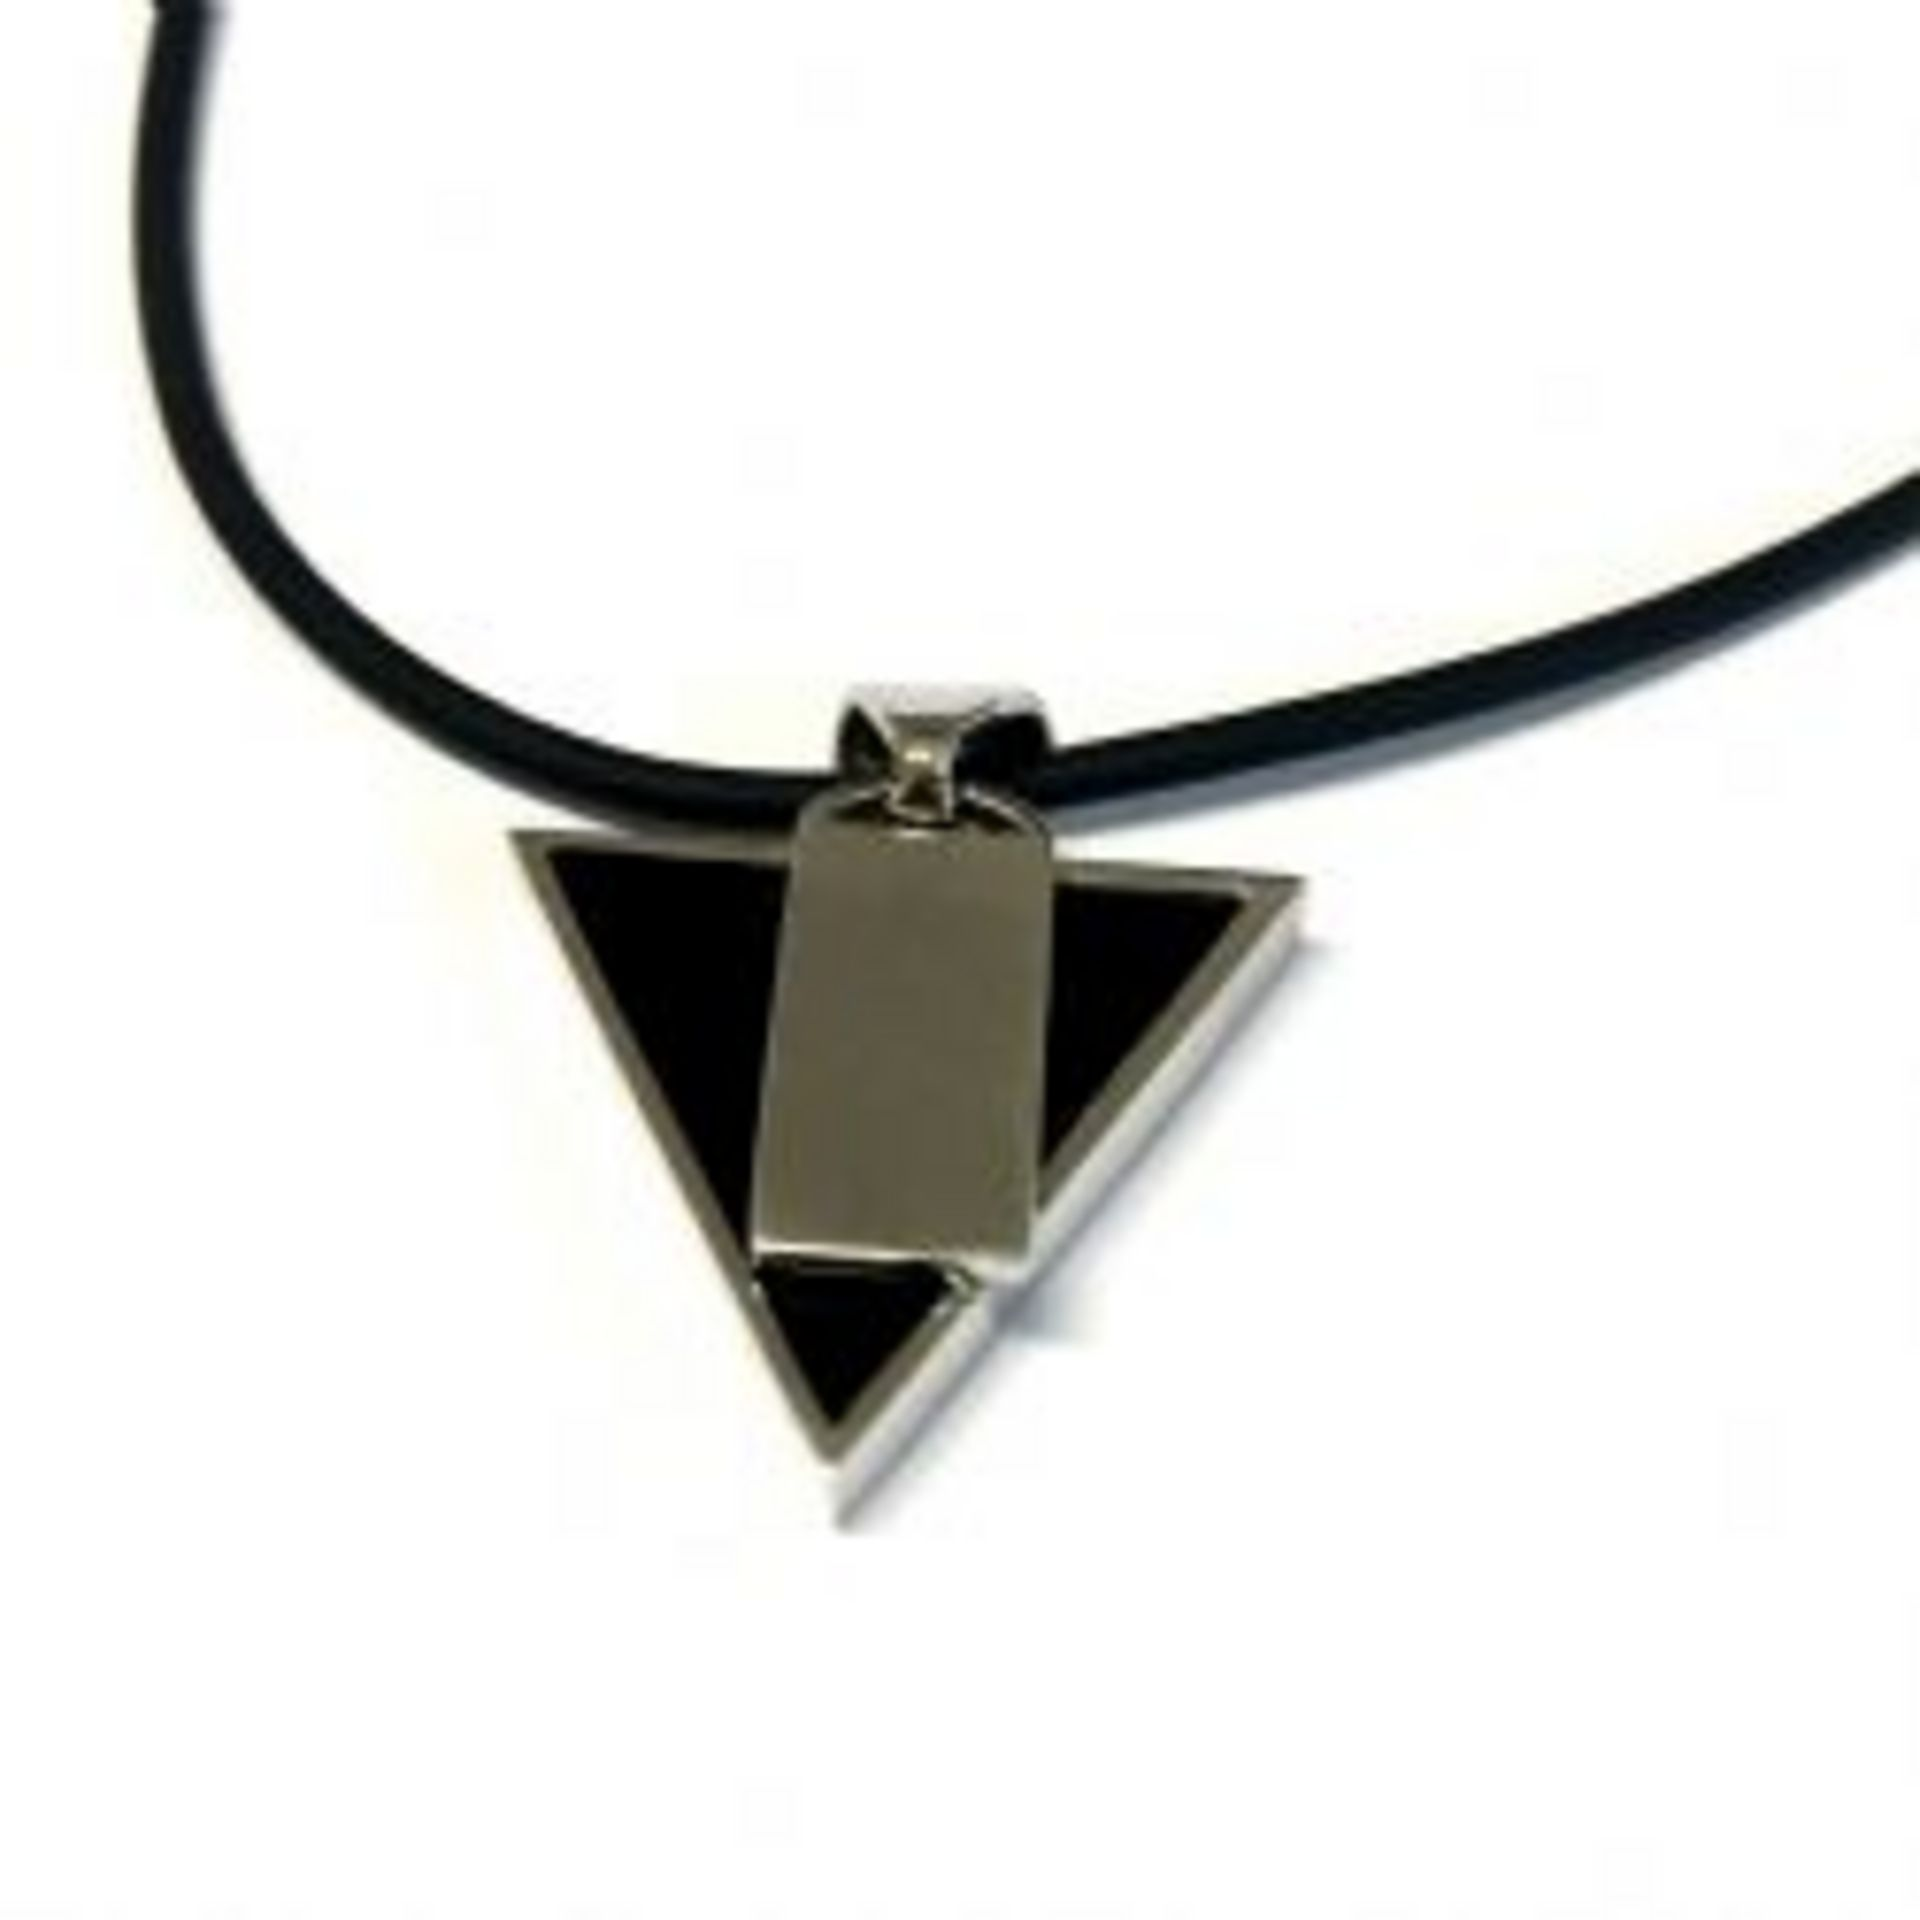 Vasco Rossi Rimini Vasco Rossi Onyx Triangle Necklace Pendant In Sterling Silver 925